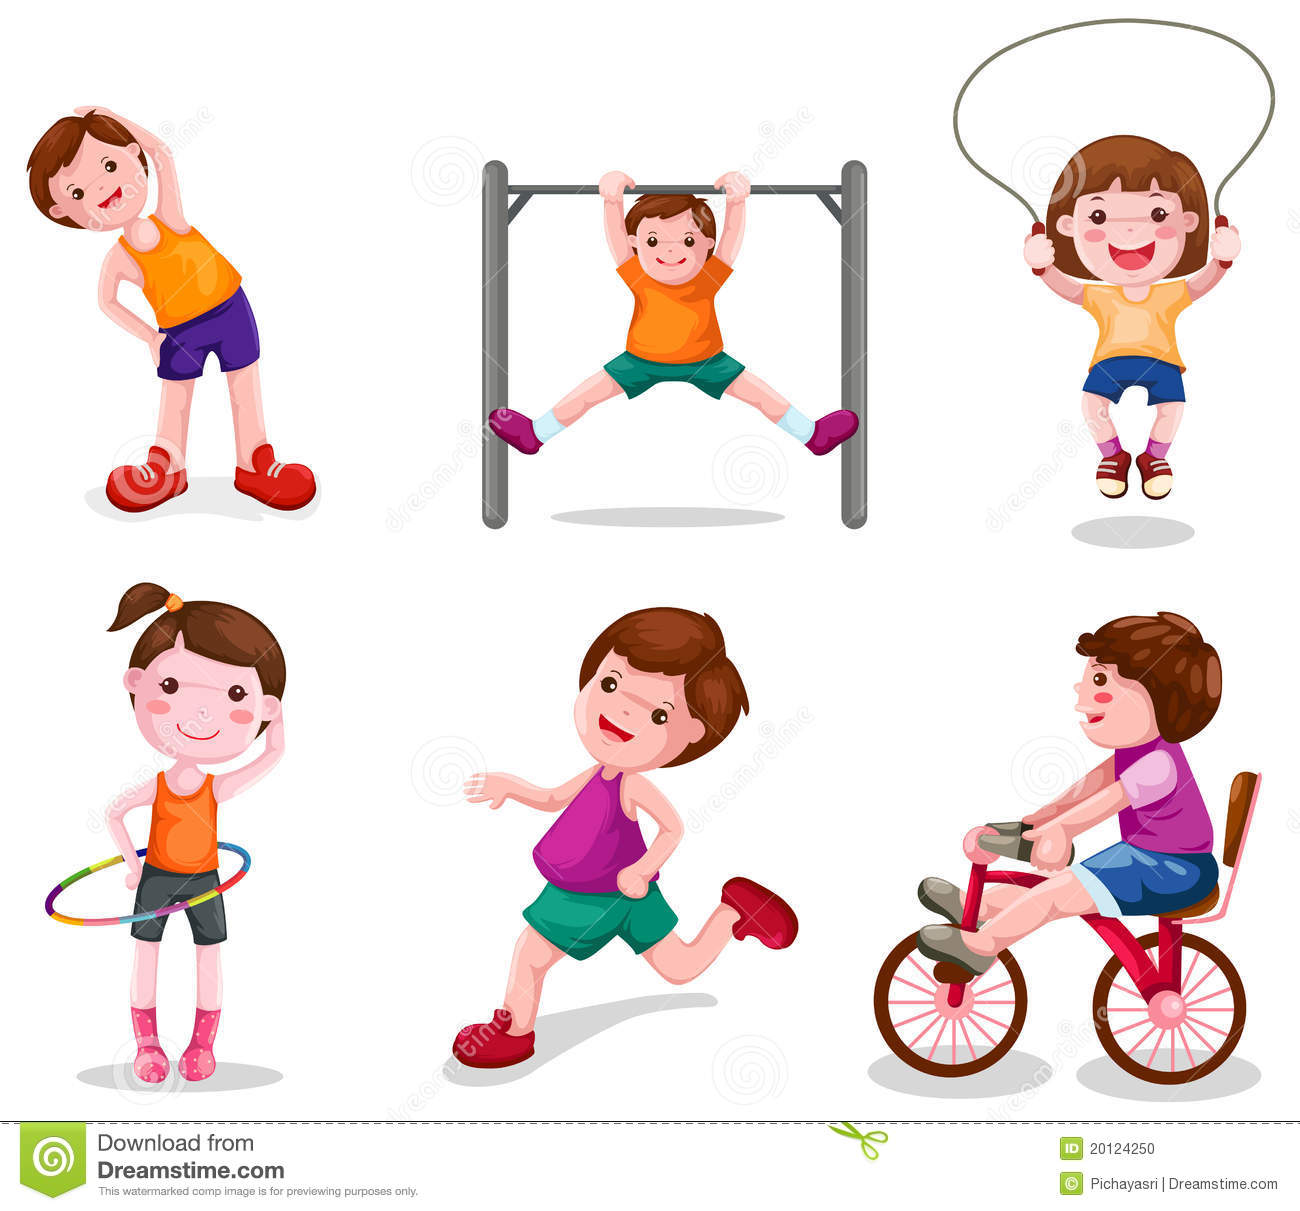 png freeuse library Athlete physical activity . Movement clipart baby exercise.